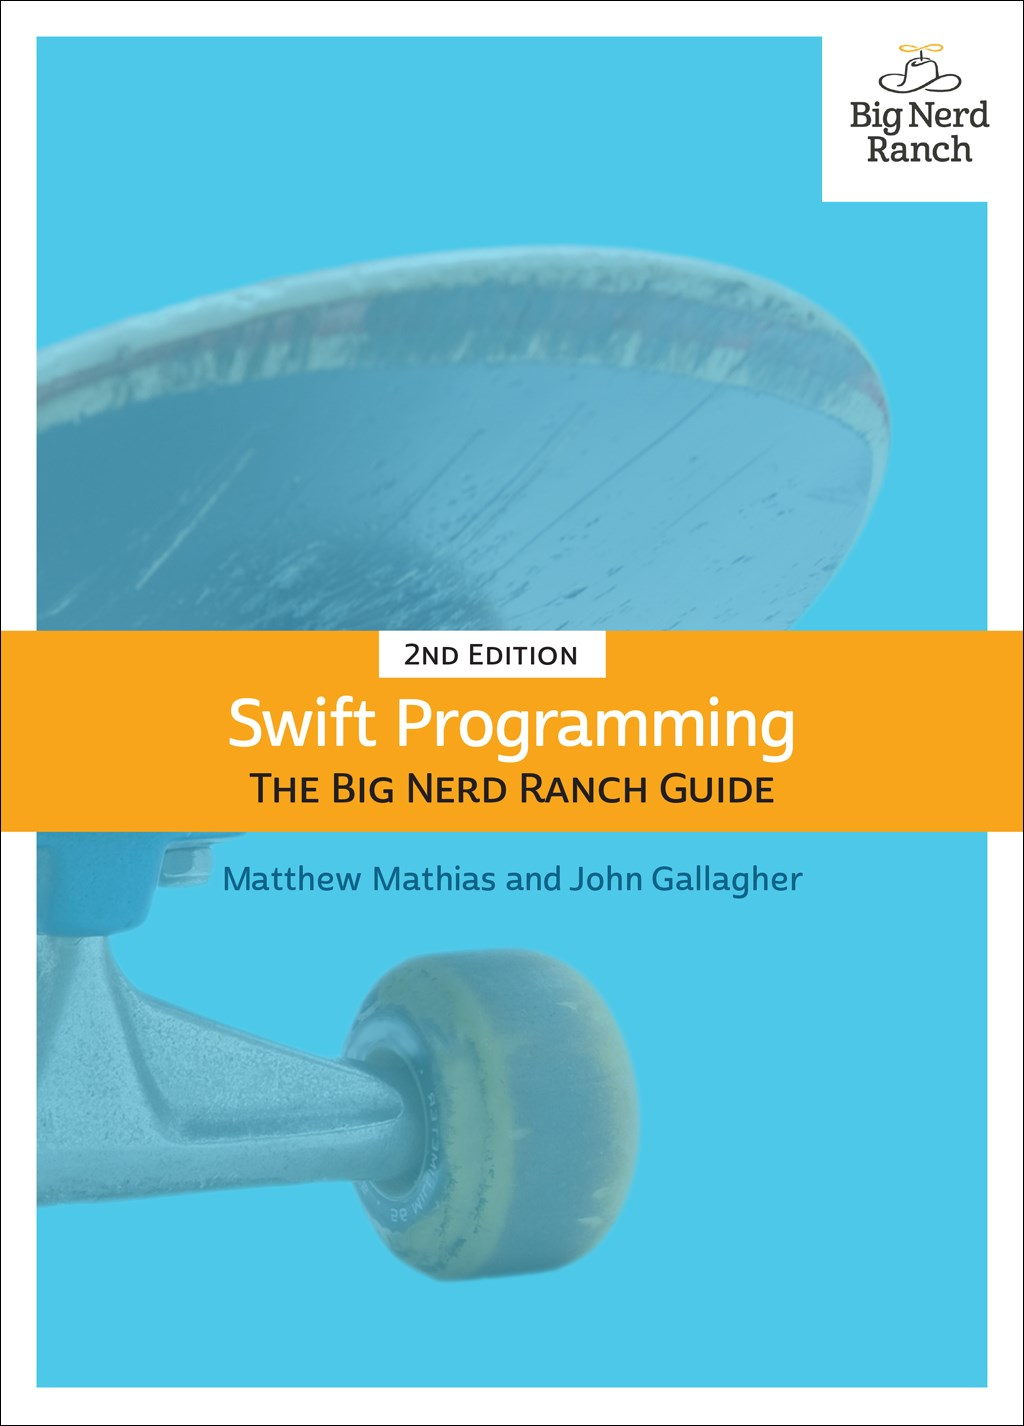 Swift Programming: The Big Nerd Ranch Guide, 2nd Edition